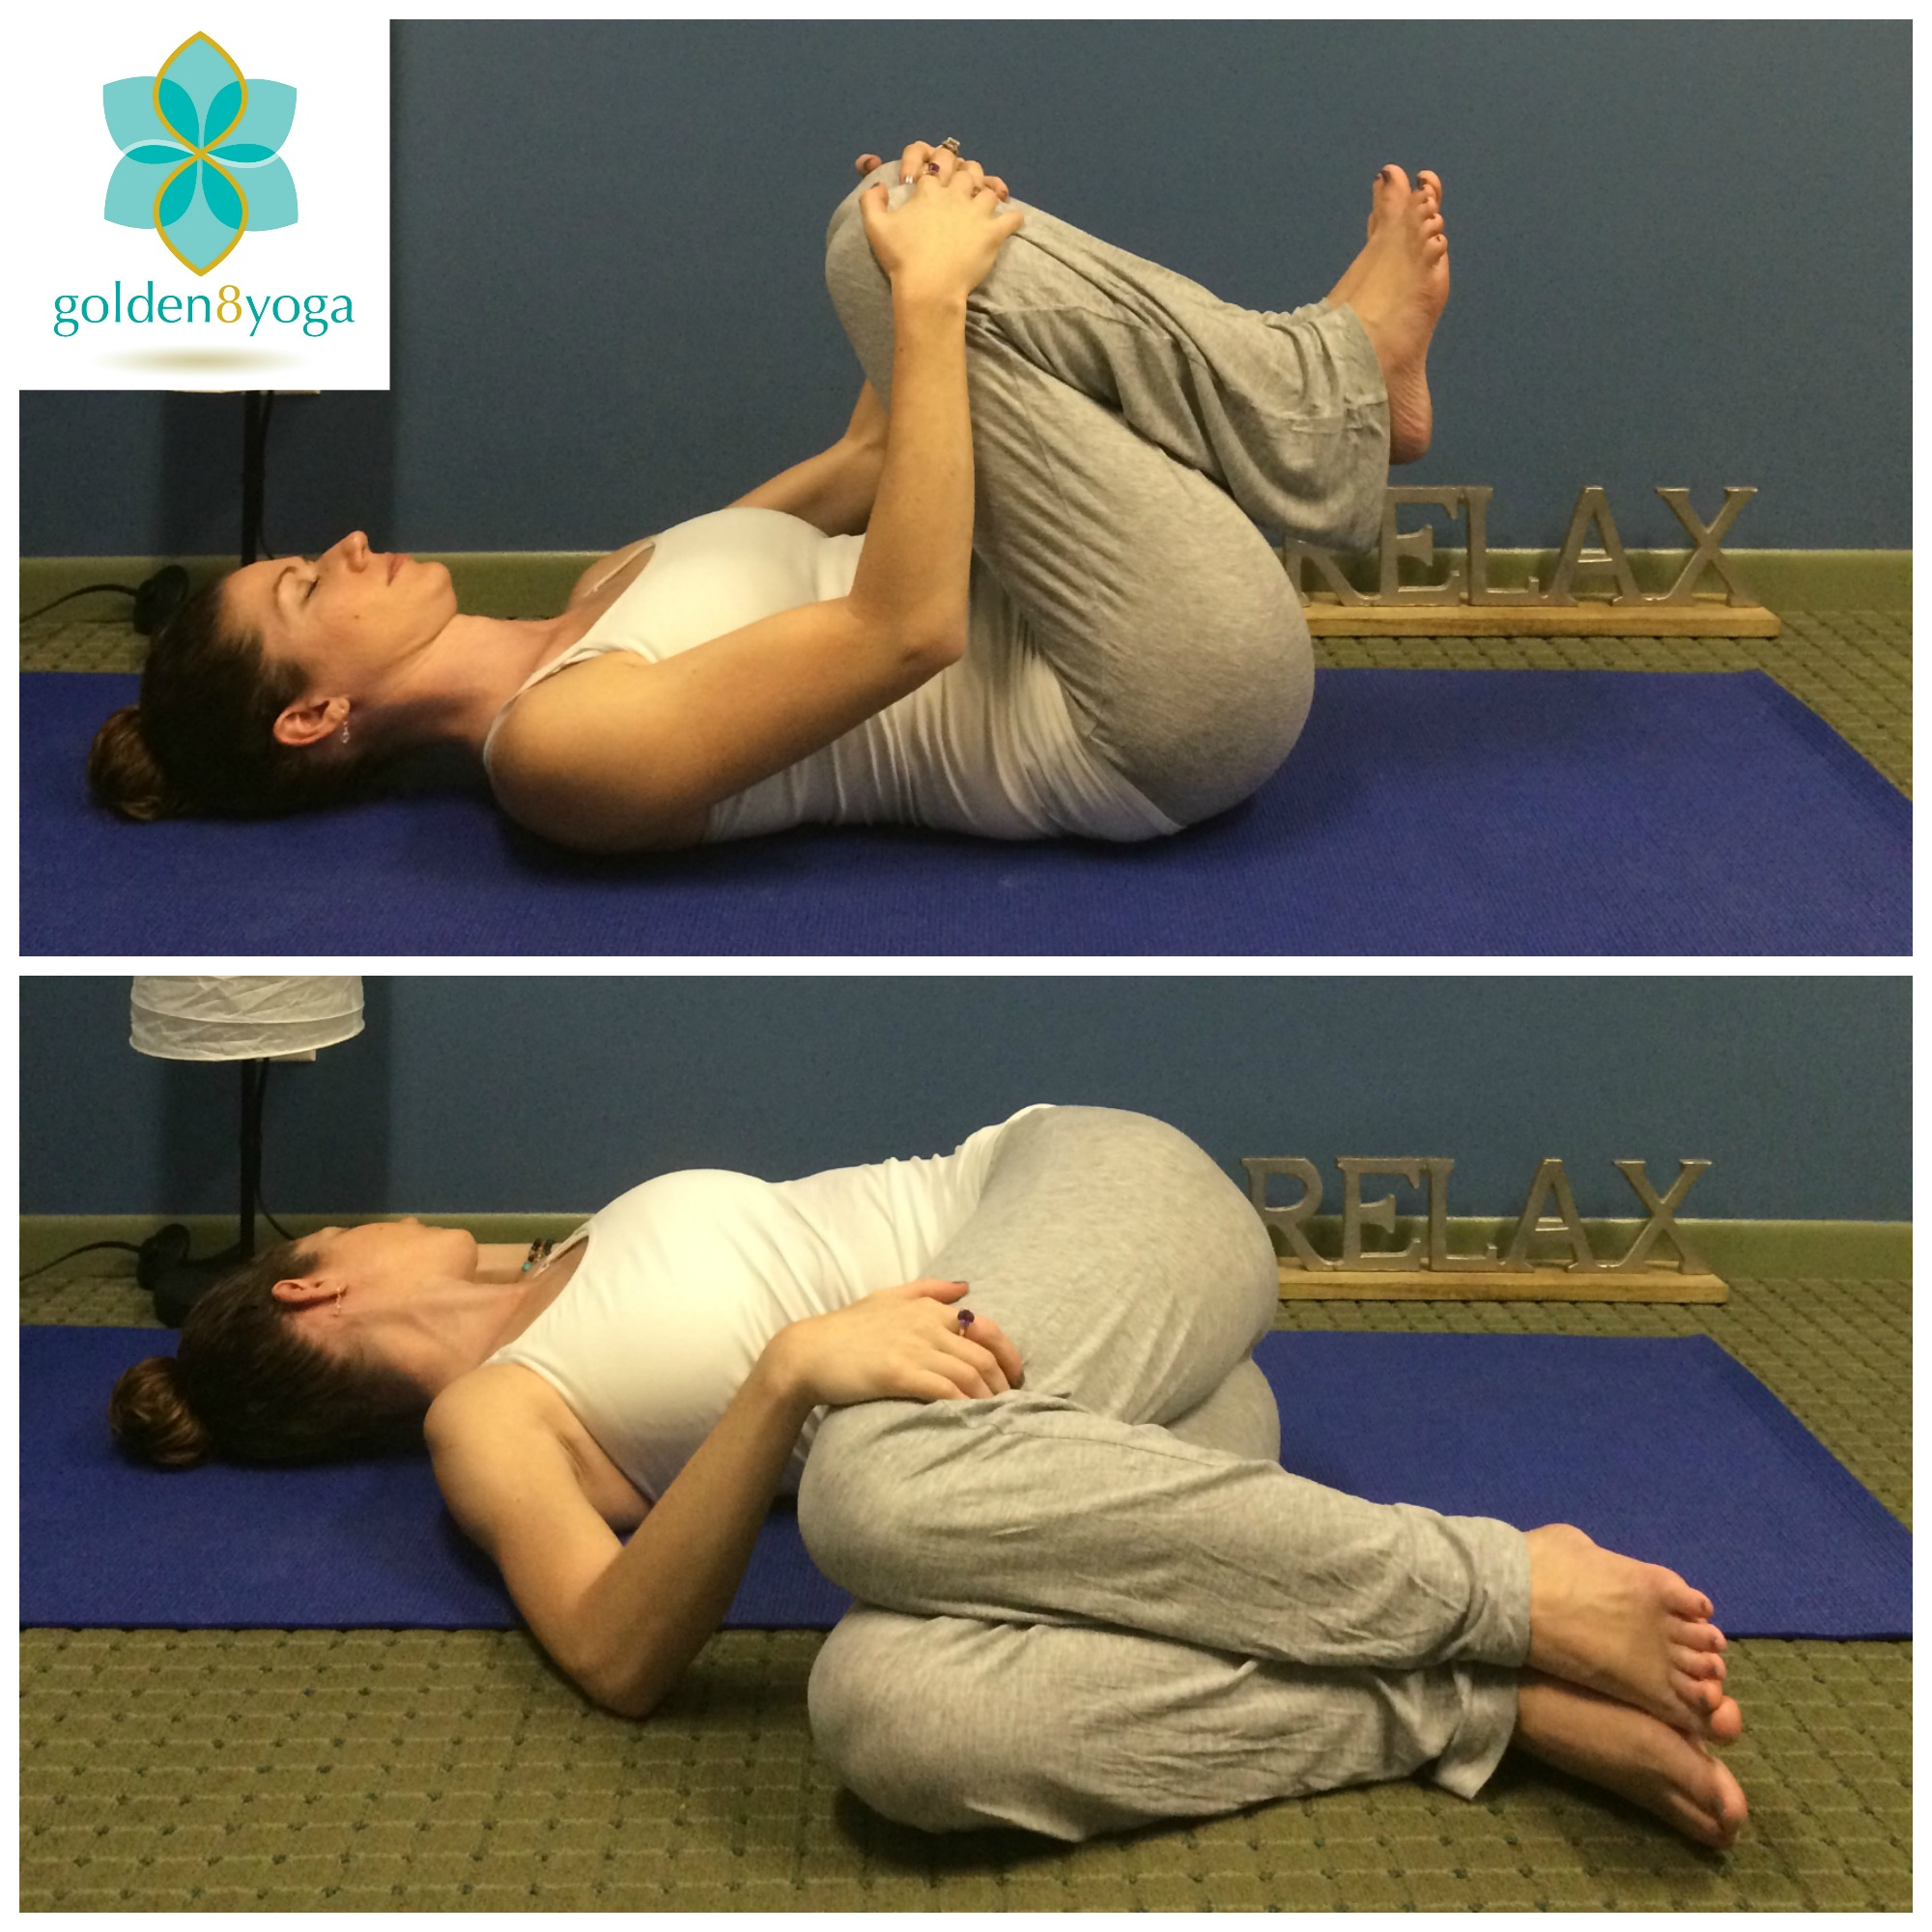 SUPINE SPINAL TWIST  Try this pose to bring flexibility to your spine, to alleviate stiffness in your low back and hips, and to aid digestion. This pose will help to alleviate any stress built up from your day.  1. Begin by laying flat on your back and hug both knees into your chest. Take a nice deep breath in and on the exhale slowly allow both legs (still bent) to lower to the floor on your right side.  2. Extend your left arm out perpendicular to your body and try to keep your left shoulder on the floor. Your right hand can be placed along your outer left thigh to help you settle into the pose.  3. Hold the pose for 5-10 breaths. On your next inhale feel your core gently engage to help bring your knees back to center and then on your exhale repeat on the opposite side.